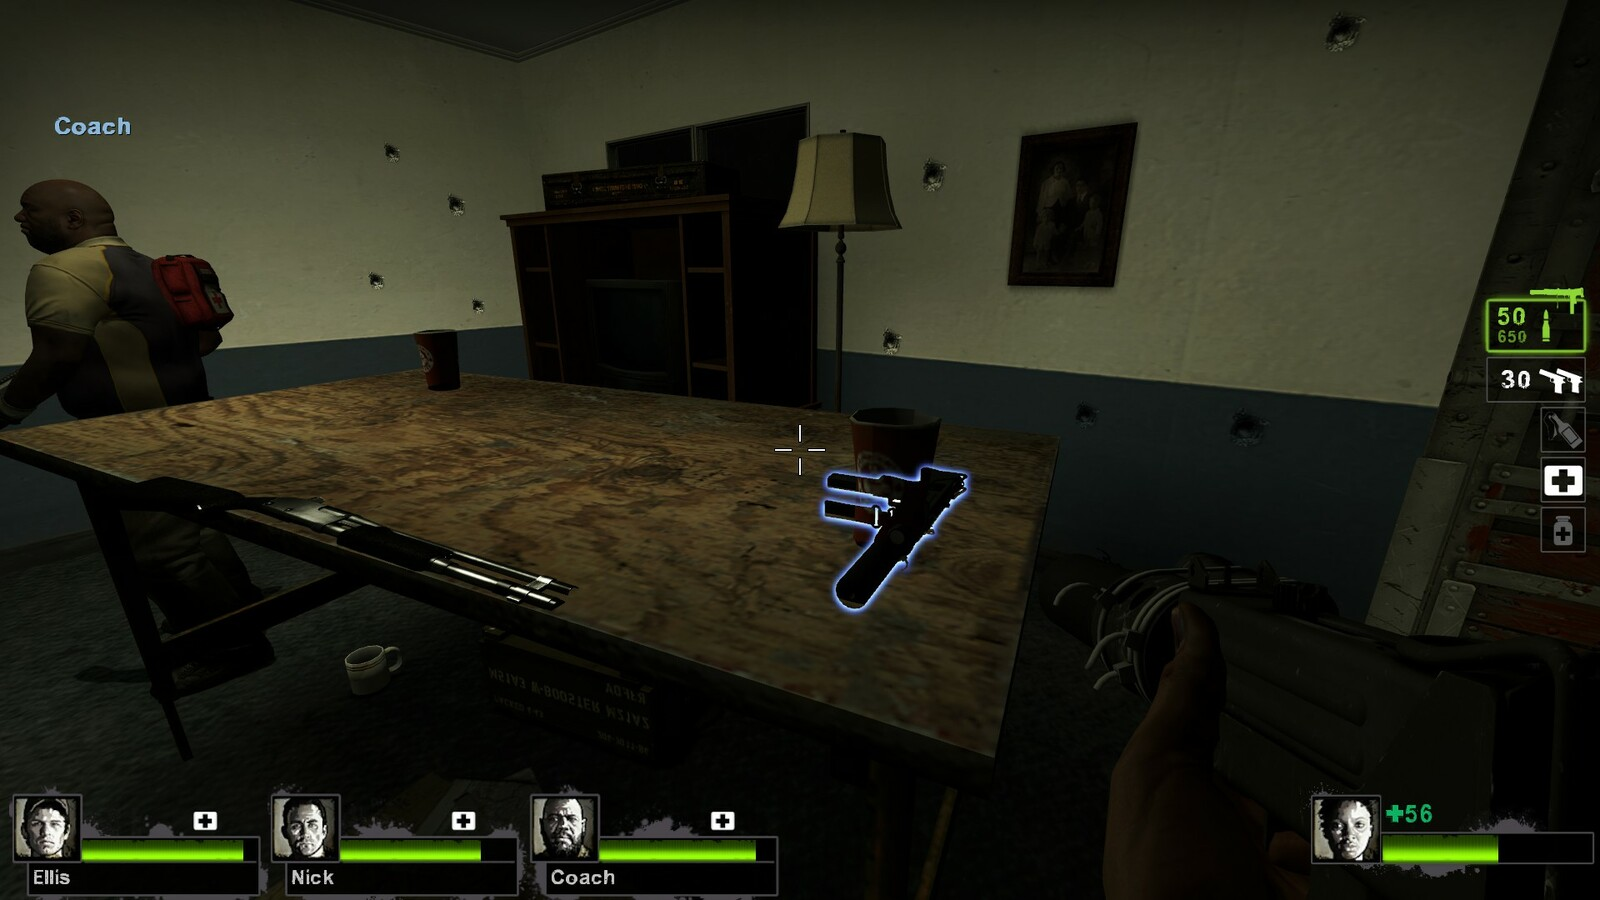 The next safe house is supplied with more weaponry and supplies for players to use.